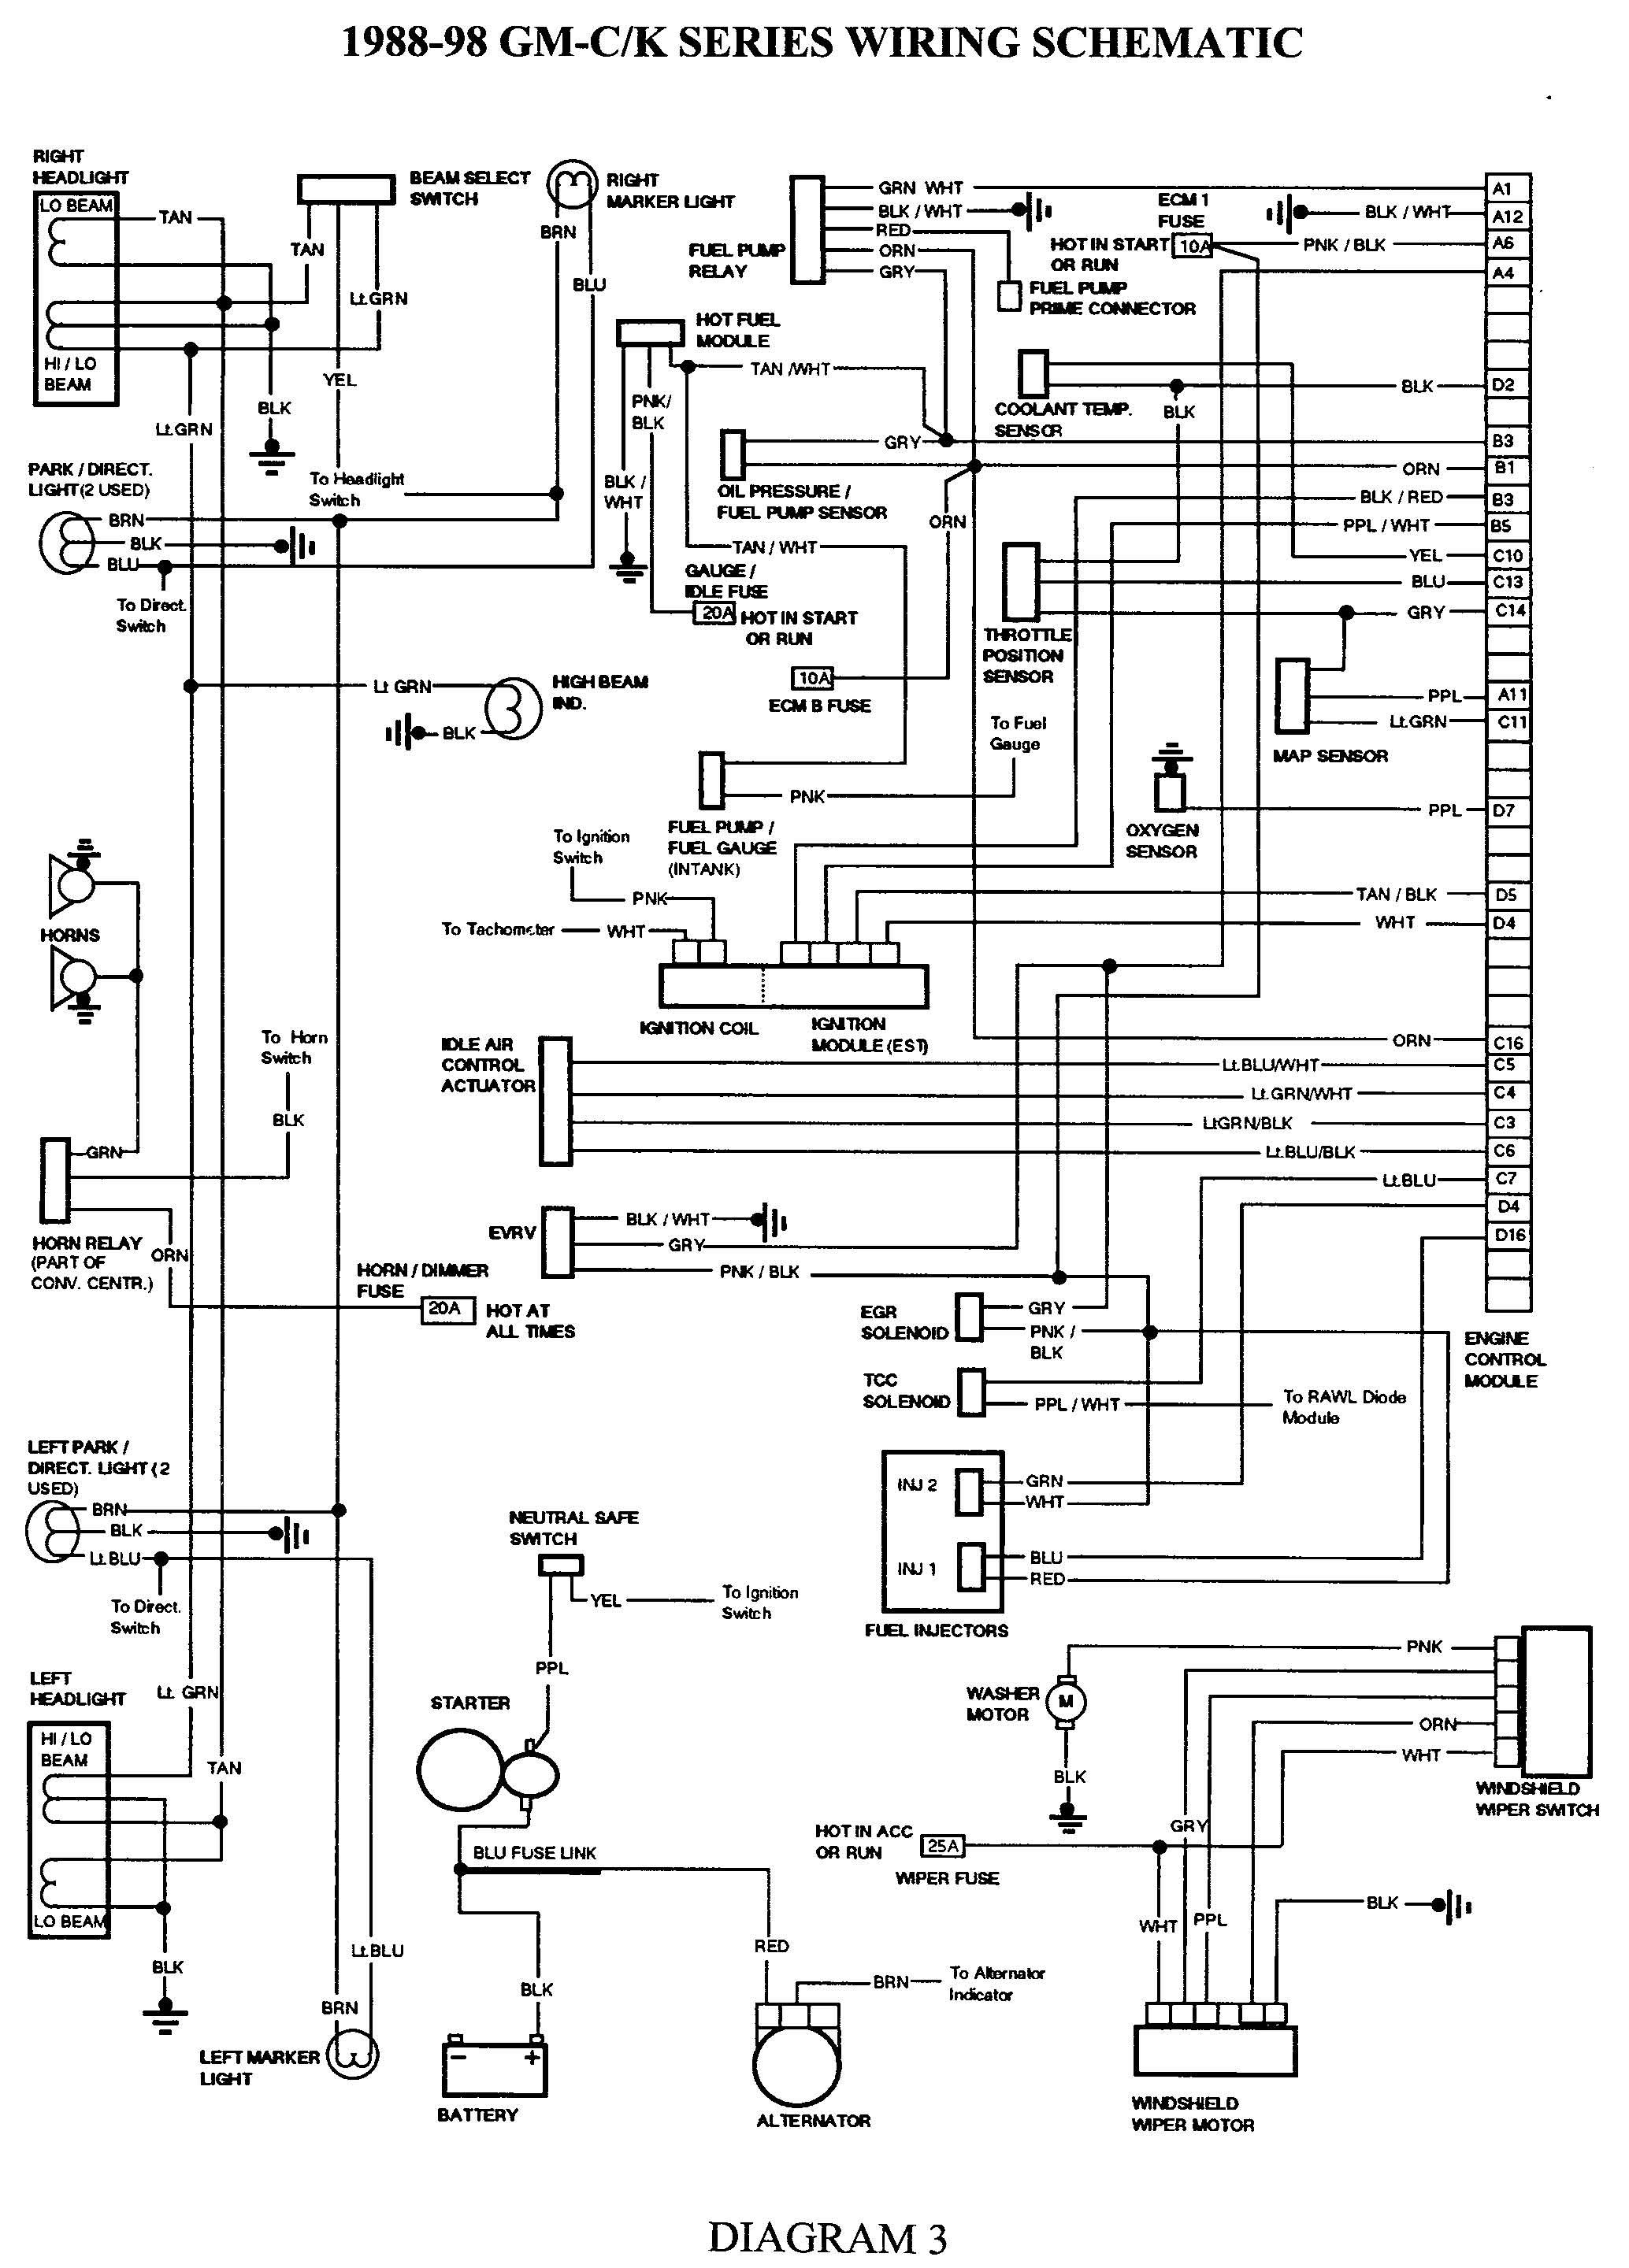 2009 suburban wiring diagram wiring schematics diagram 2007 hhr timing marks gmc truck wiring diagrams on gm wiring harness diagram 88 98 kc chevy suburban radio wiring diagram 2009 suburban wiring diagram